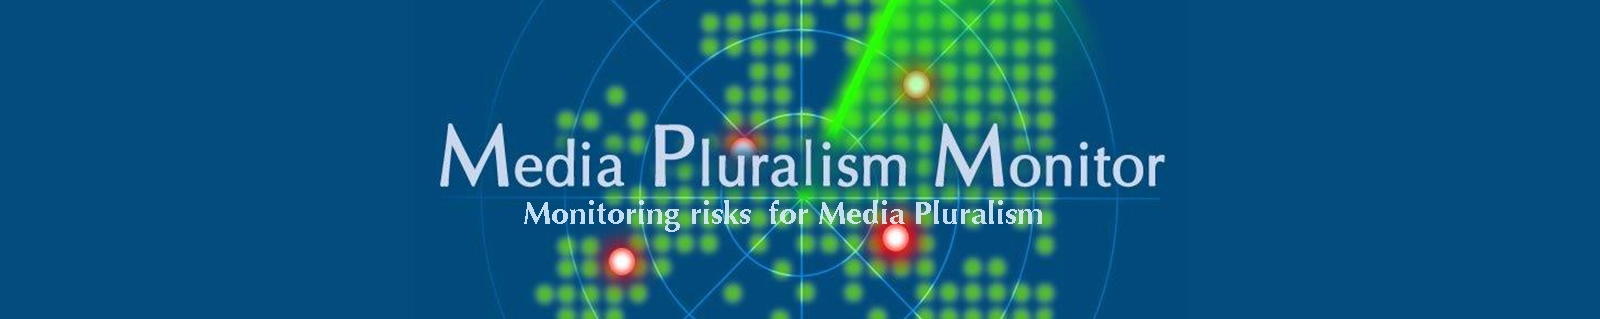 The 2017 Media Pluralism Monitor is OUT!